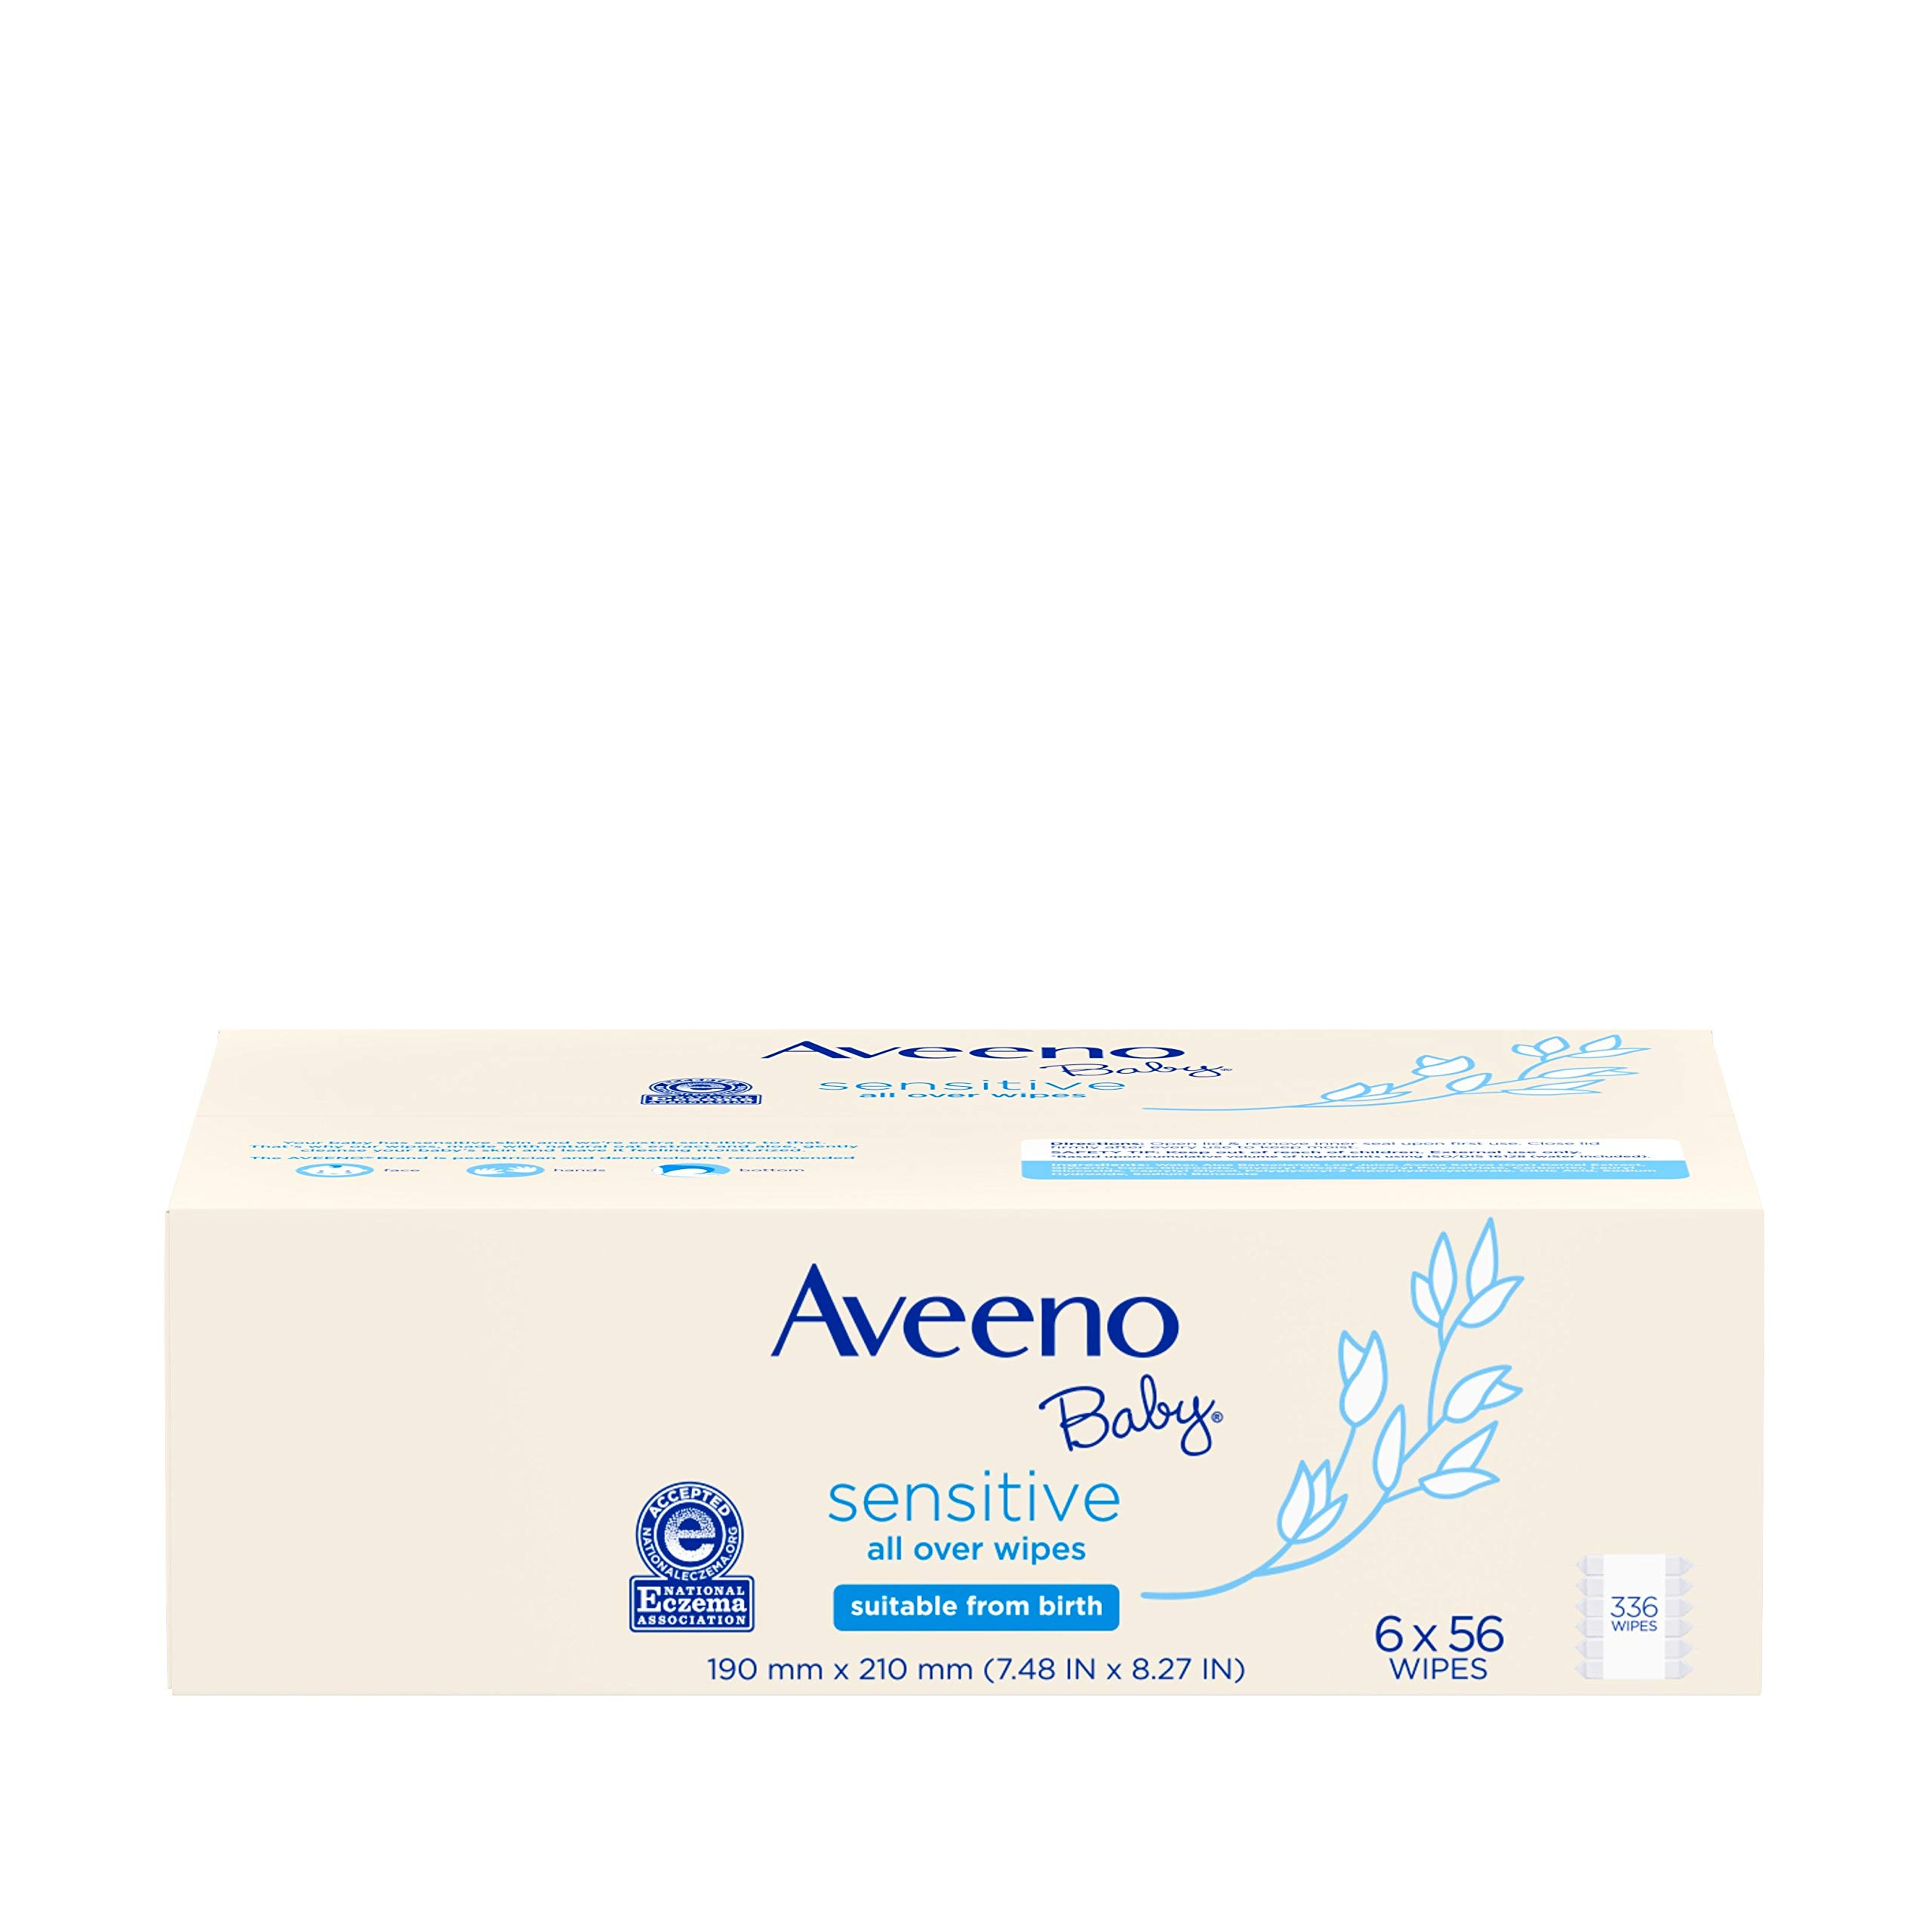 Aveeno Baby Sensitive All Over Wipes, Hypoallergenic & Fragrance-Free, 6 Pack of 56 Ct, 336Count